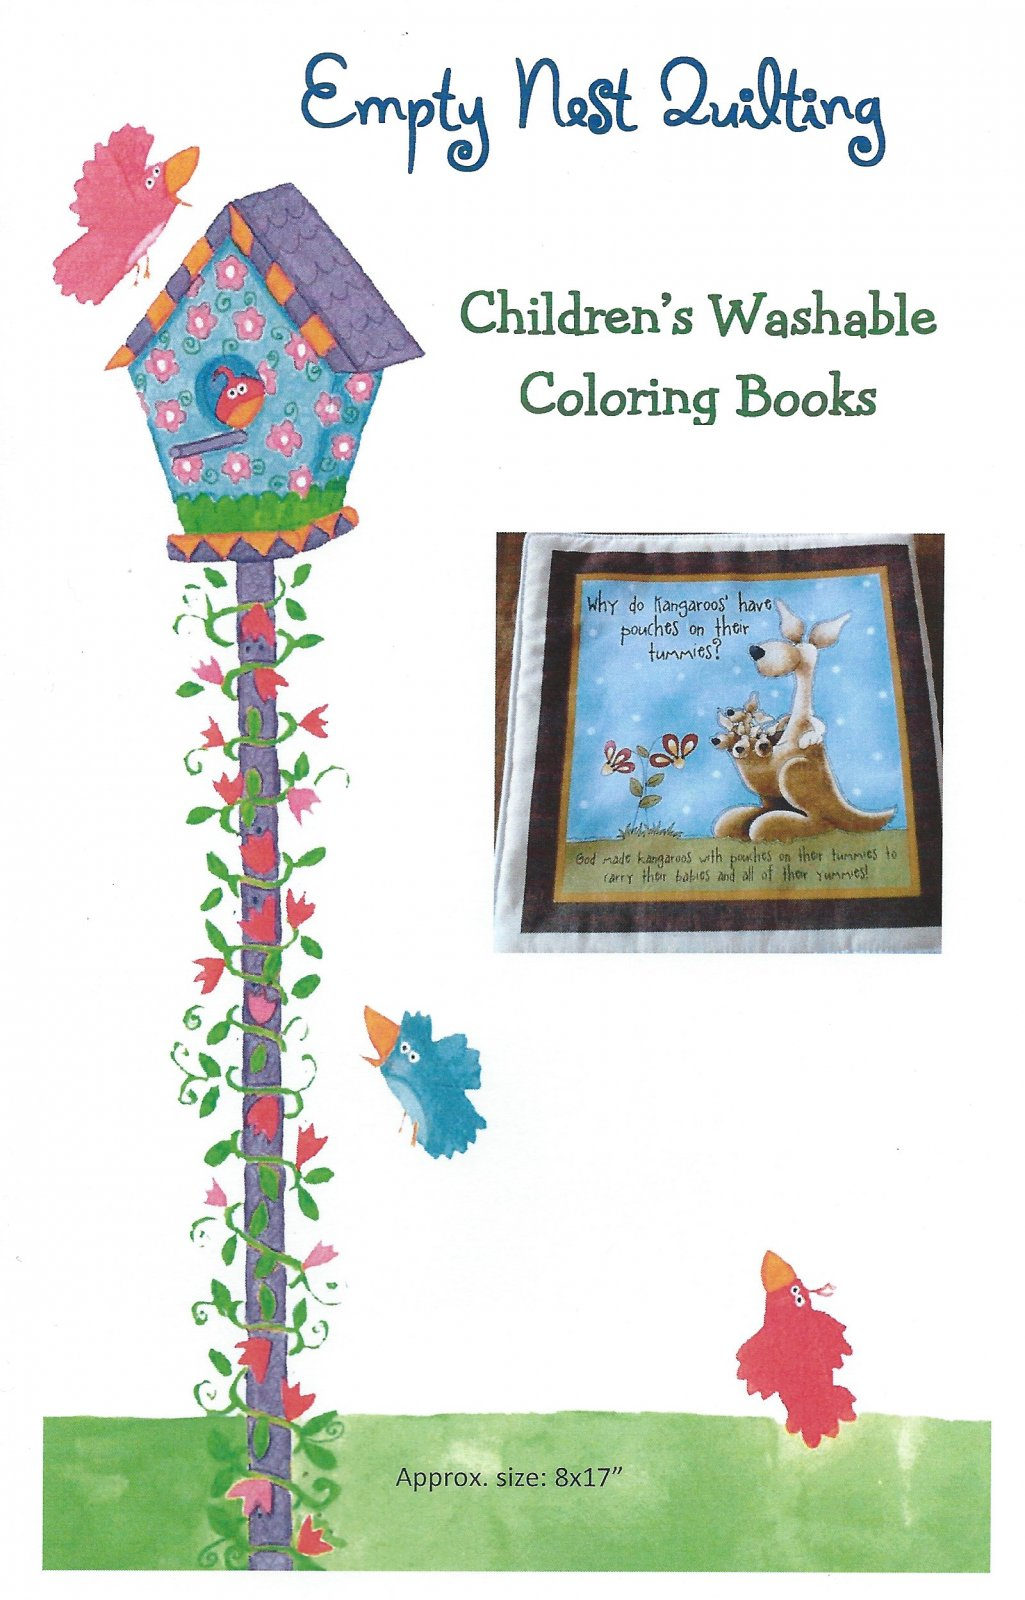 Children's Washable Coloring Book Pattern